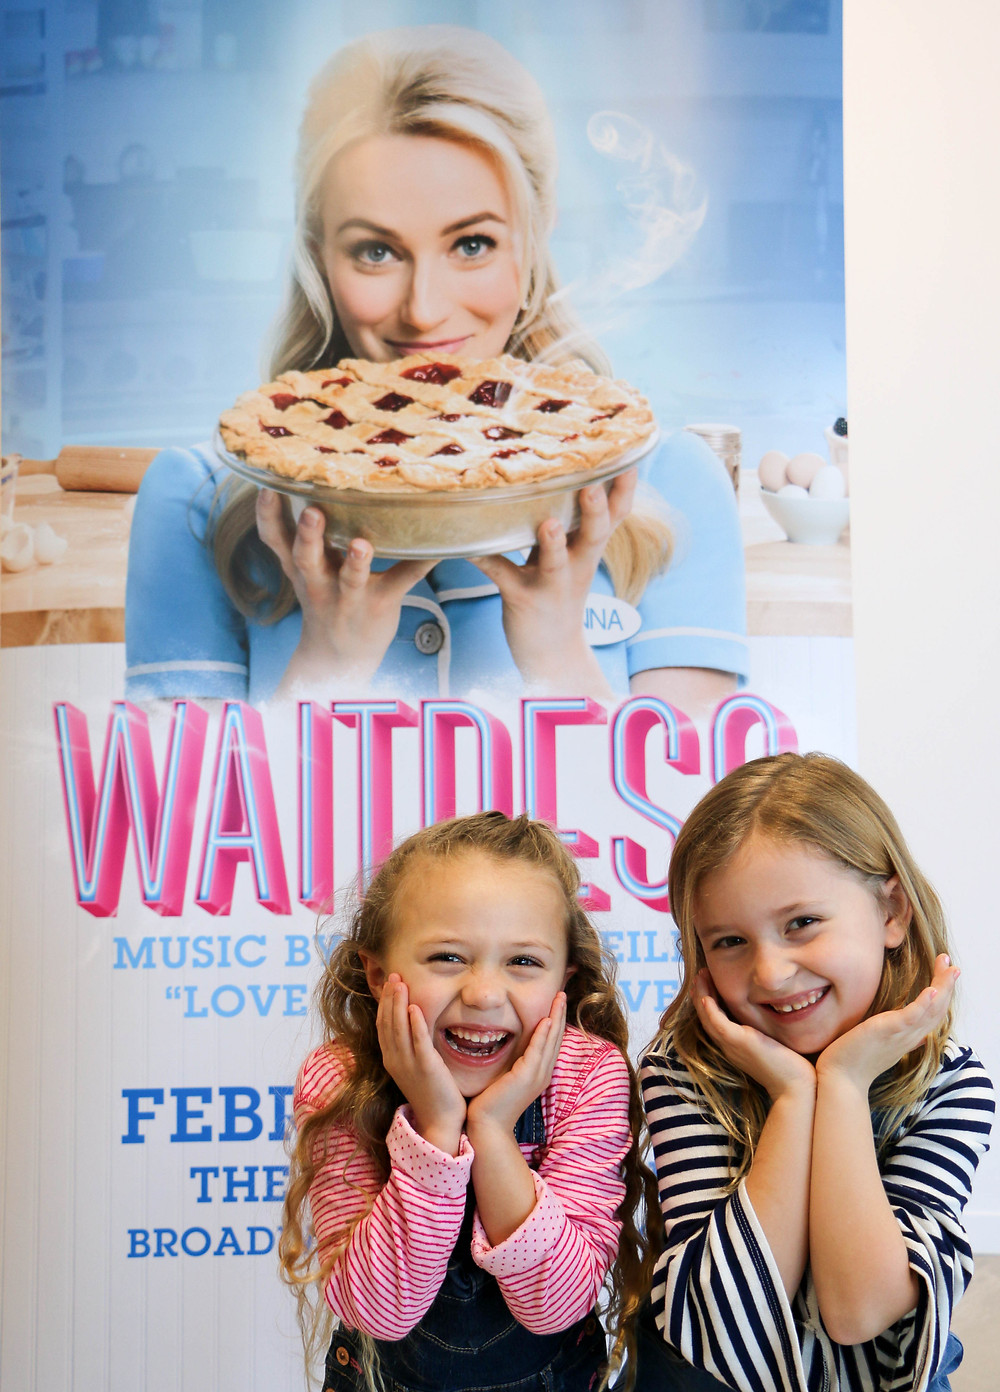 WAITRESS - Introducing Atlanta's Lulus